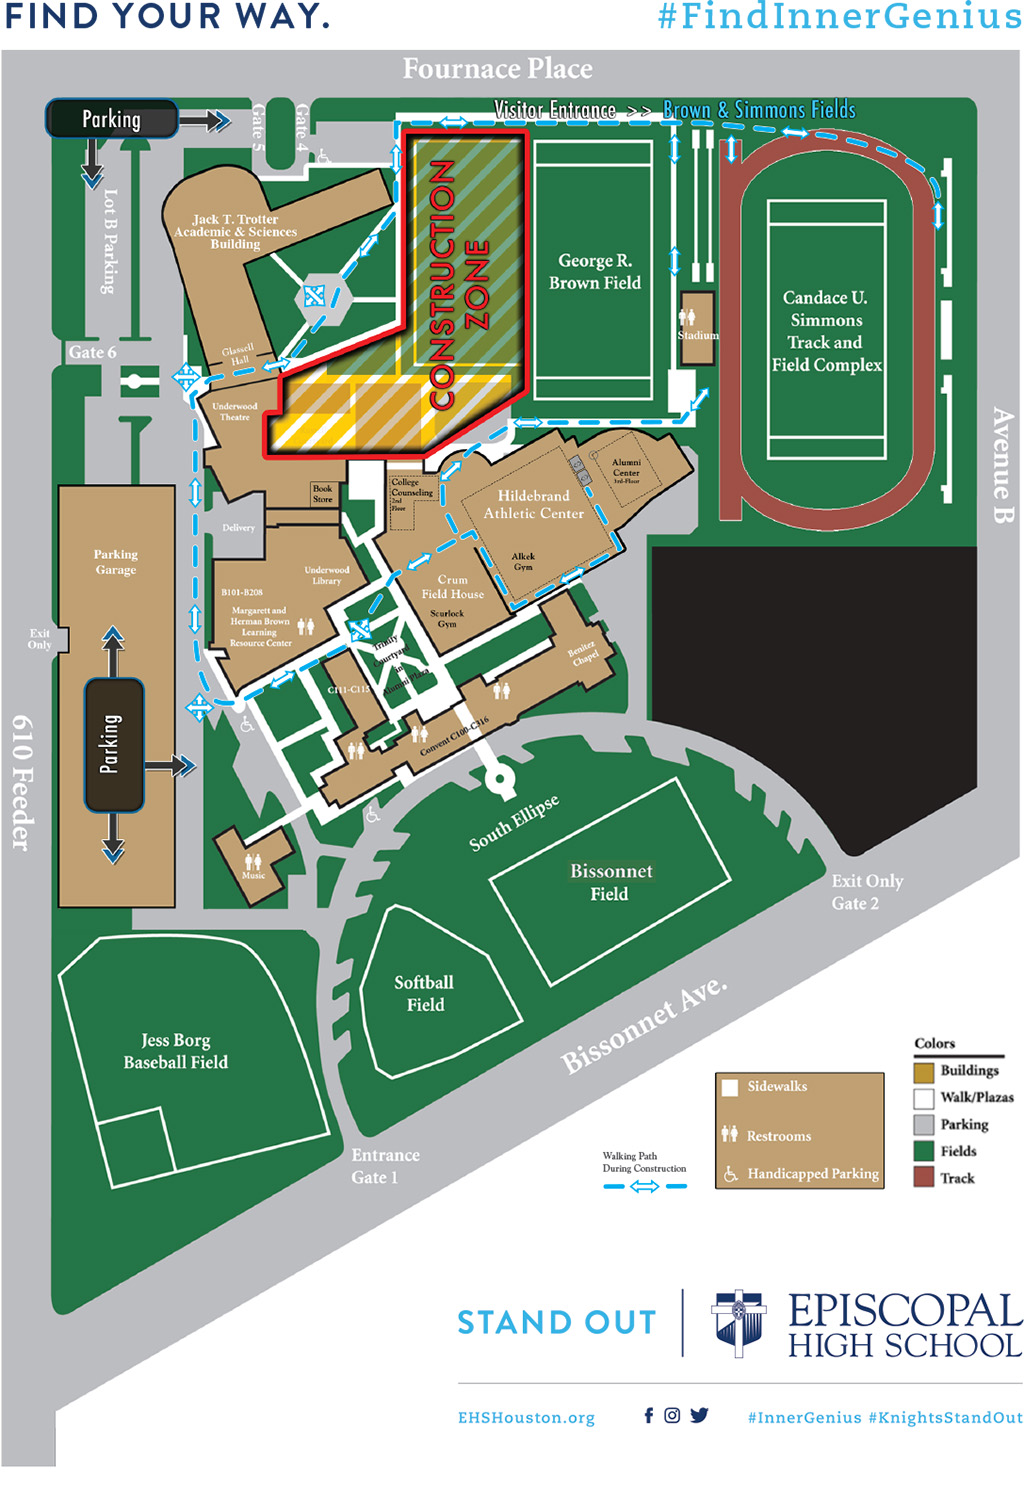 School Campus Map.Campus Map Directions Episcopal High School Houston Bellaire